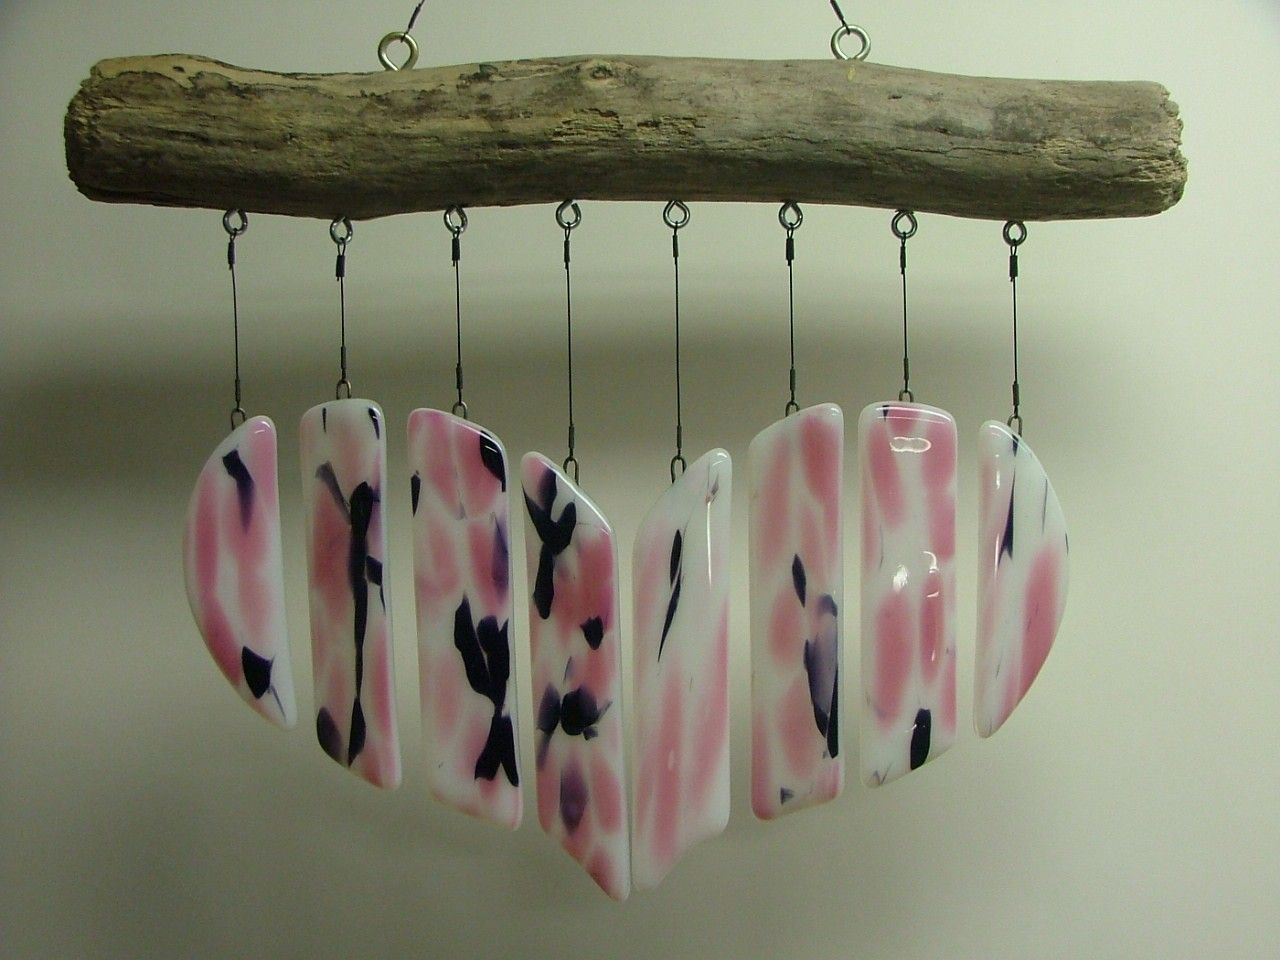 Crooked River Ranch Glass Art offers gorgeous wind chimes, glass pendants